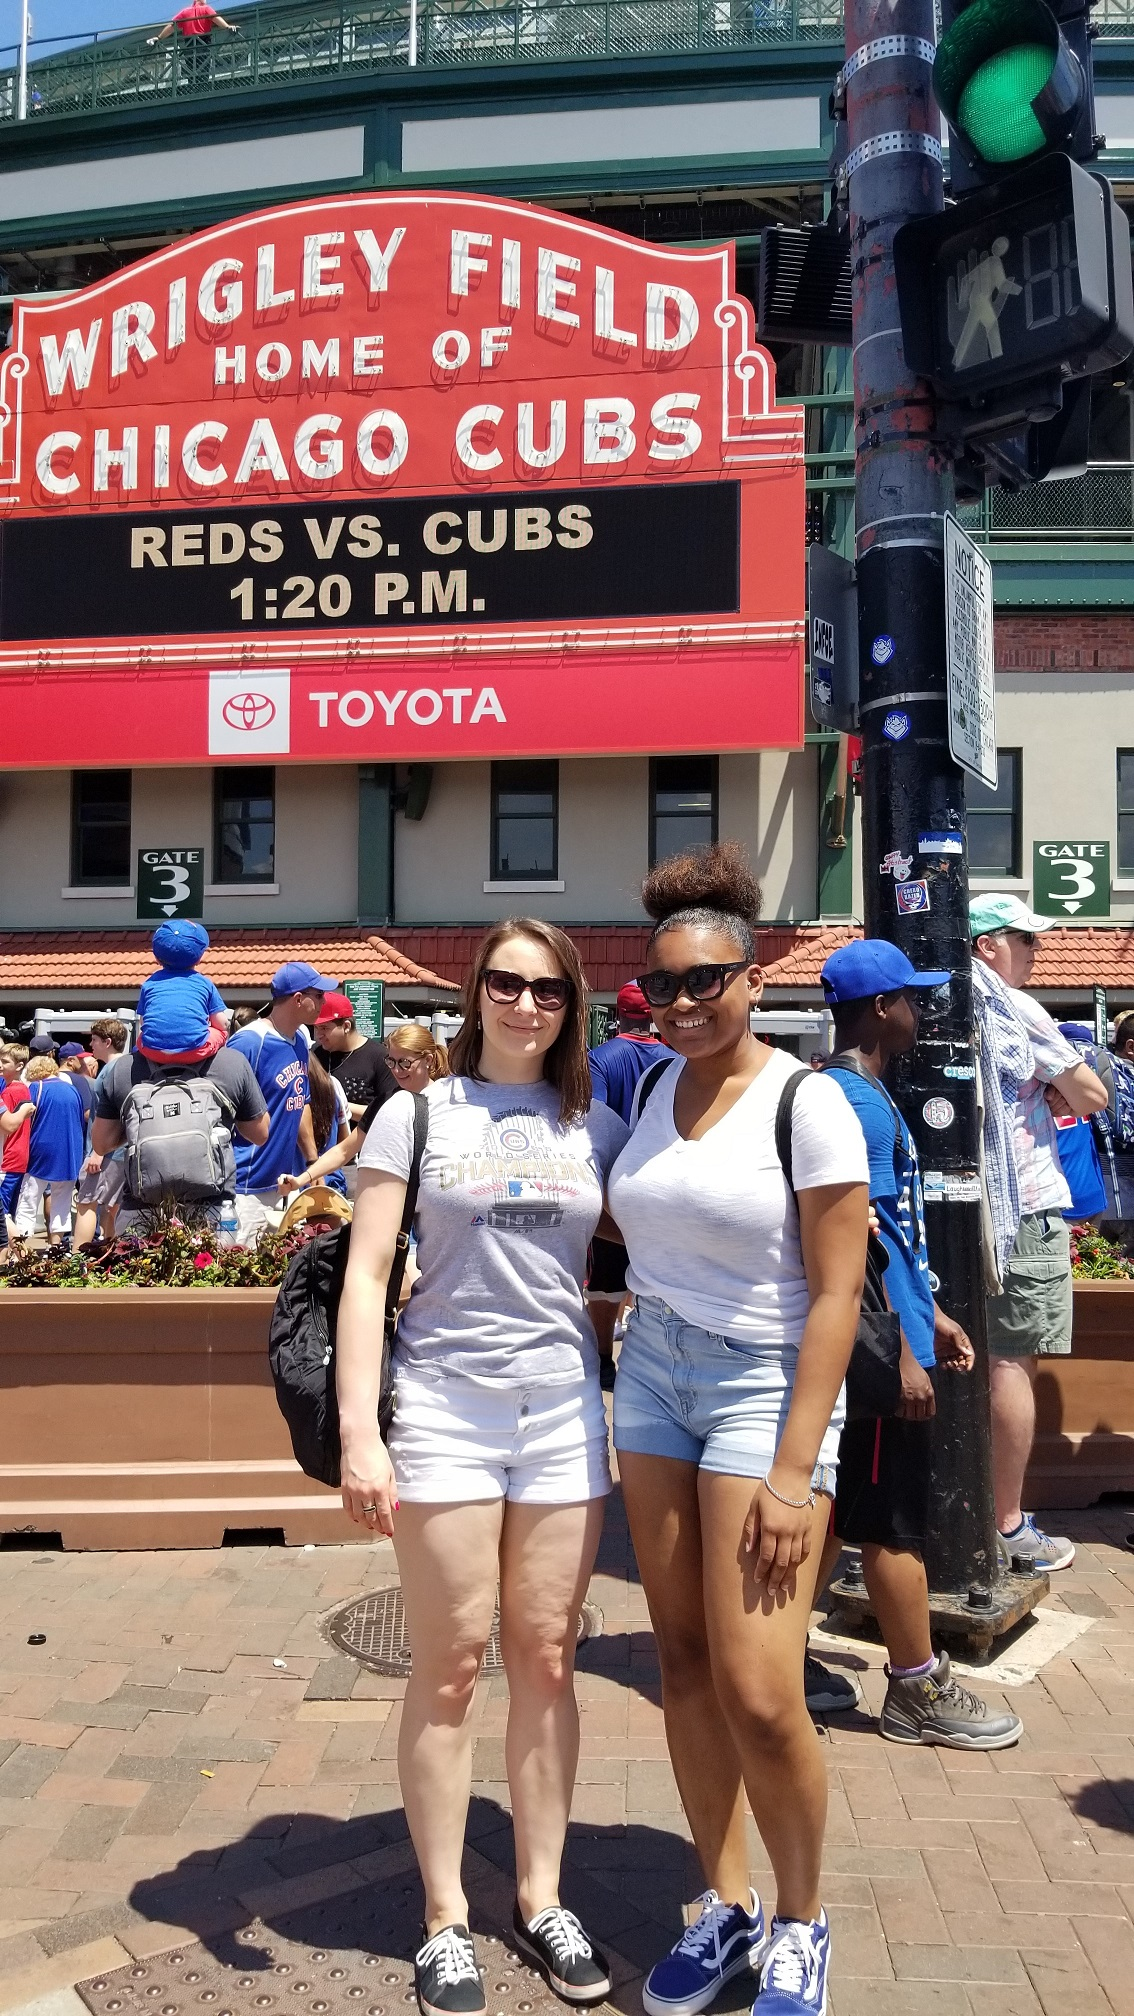 Anna Kuta and All Starts Project intern, Alexis Cannon enjoyed a beautiful day at Wrigley Field, watching the Cubs play during a 2019 summer group outing.